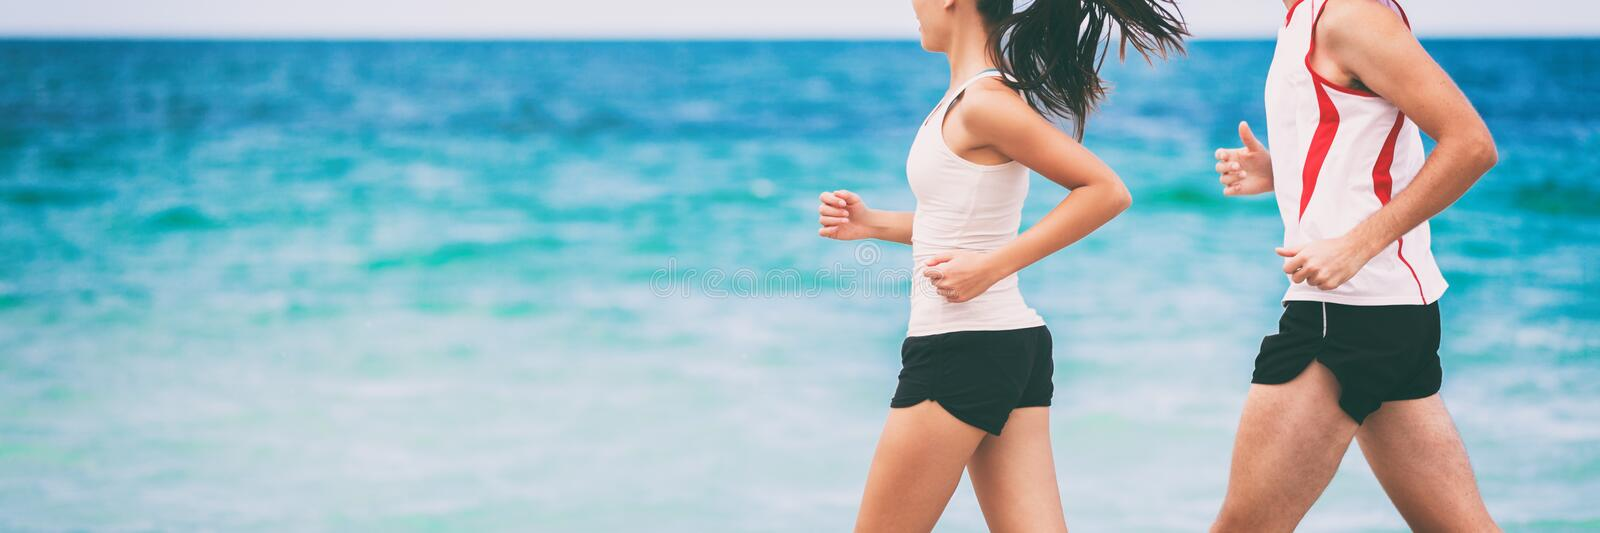 Sports athletes runners couple training together jogging on blue ocean background panoramic banner with copyspace. Two joggers royalty free stock images